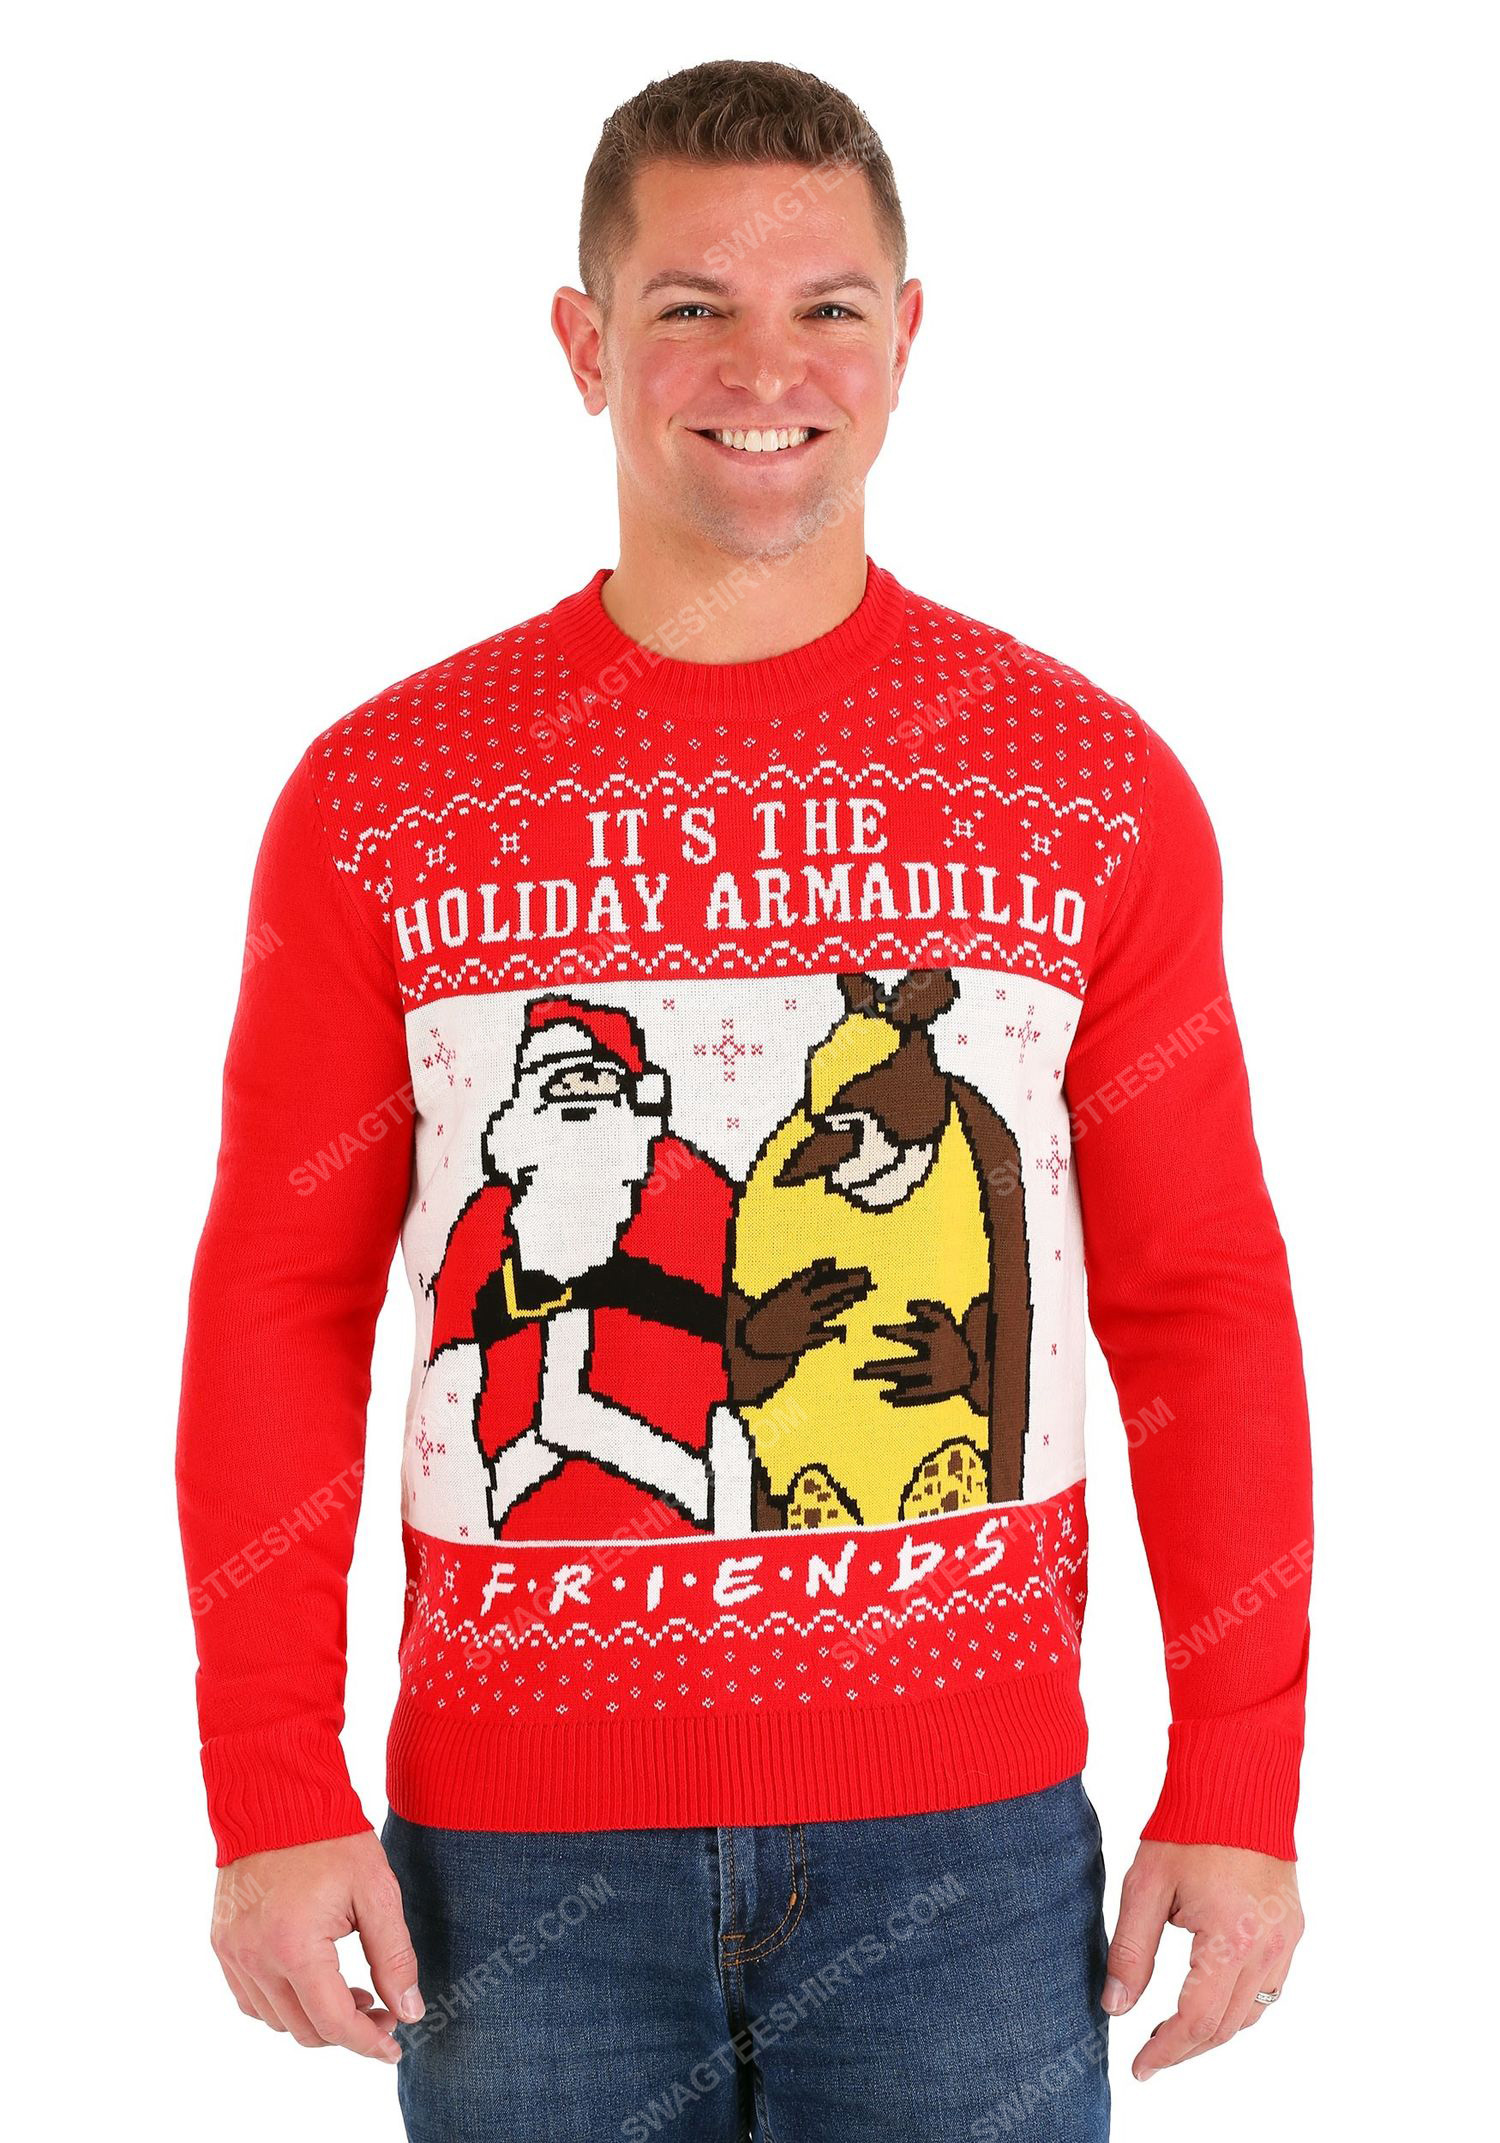 TV show friends it's the holiday armadillo full print ugly christmas sweater 2 - Copy (2)